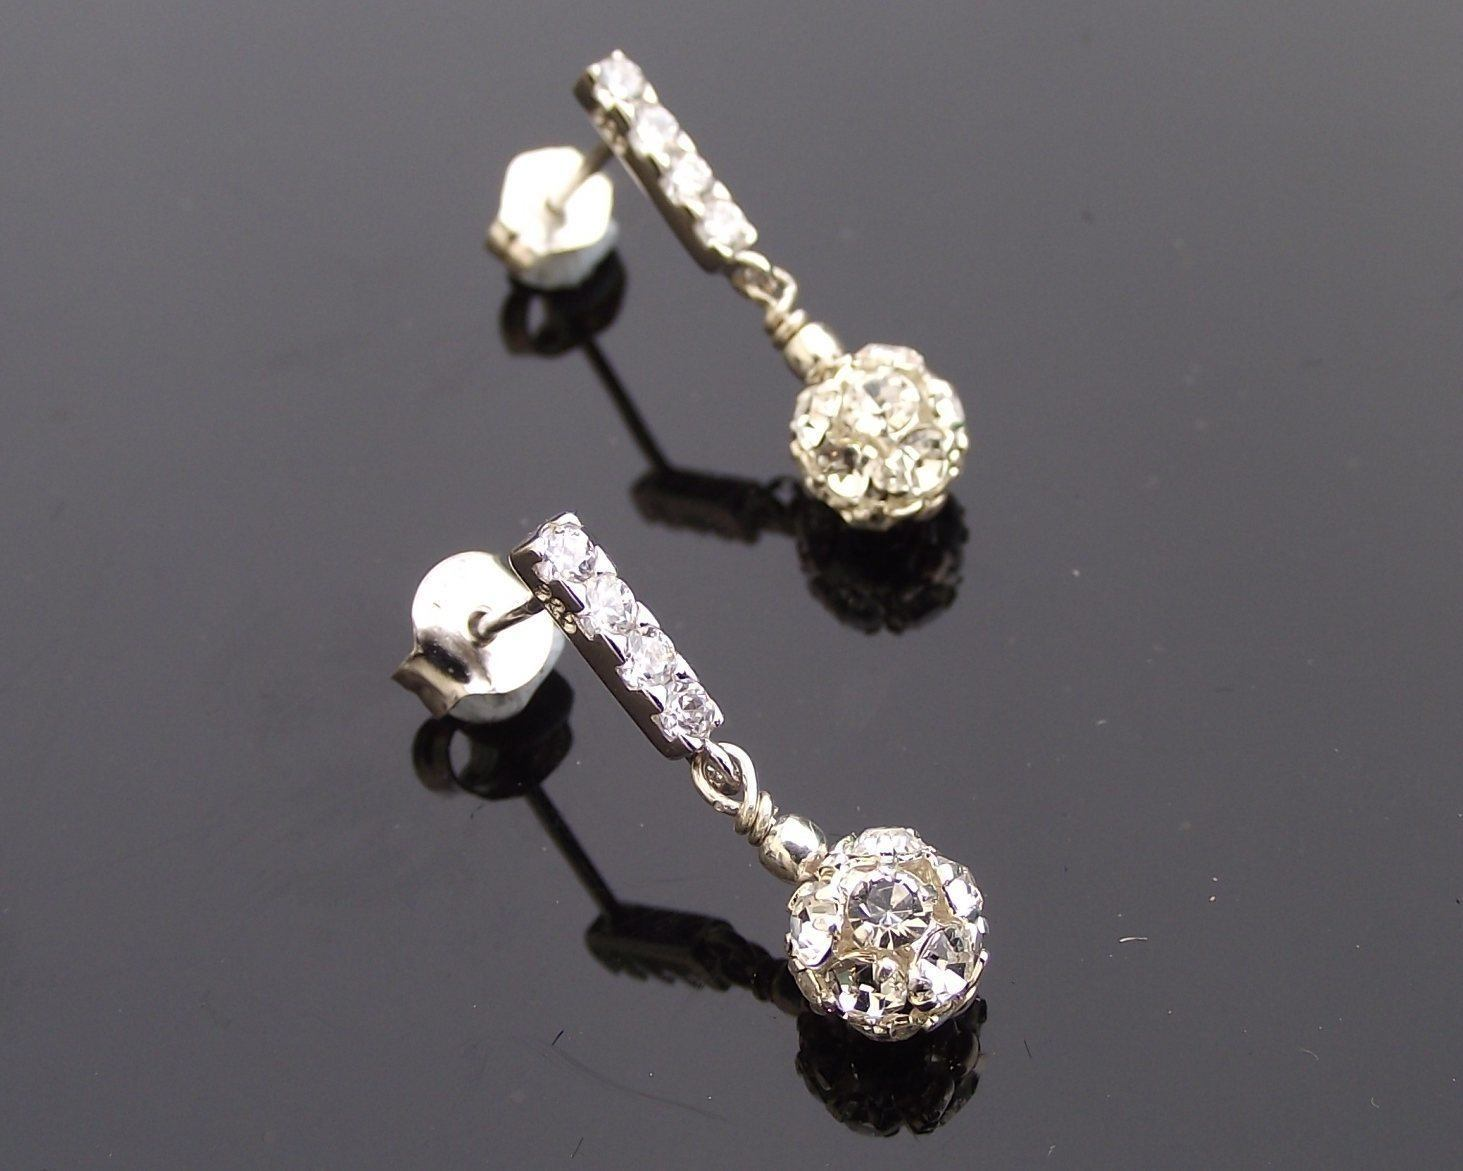 Wedding Earrings - Silver Crystal Encrusted Drop Earrings, Marseille